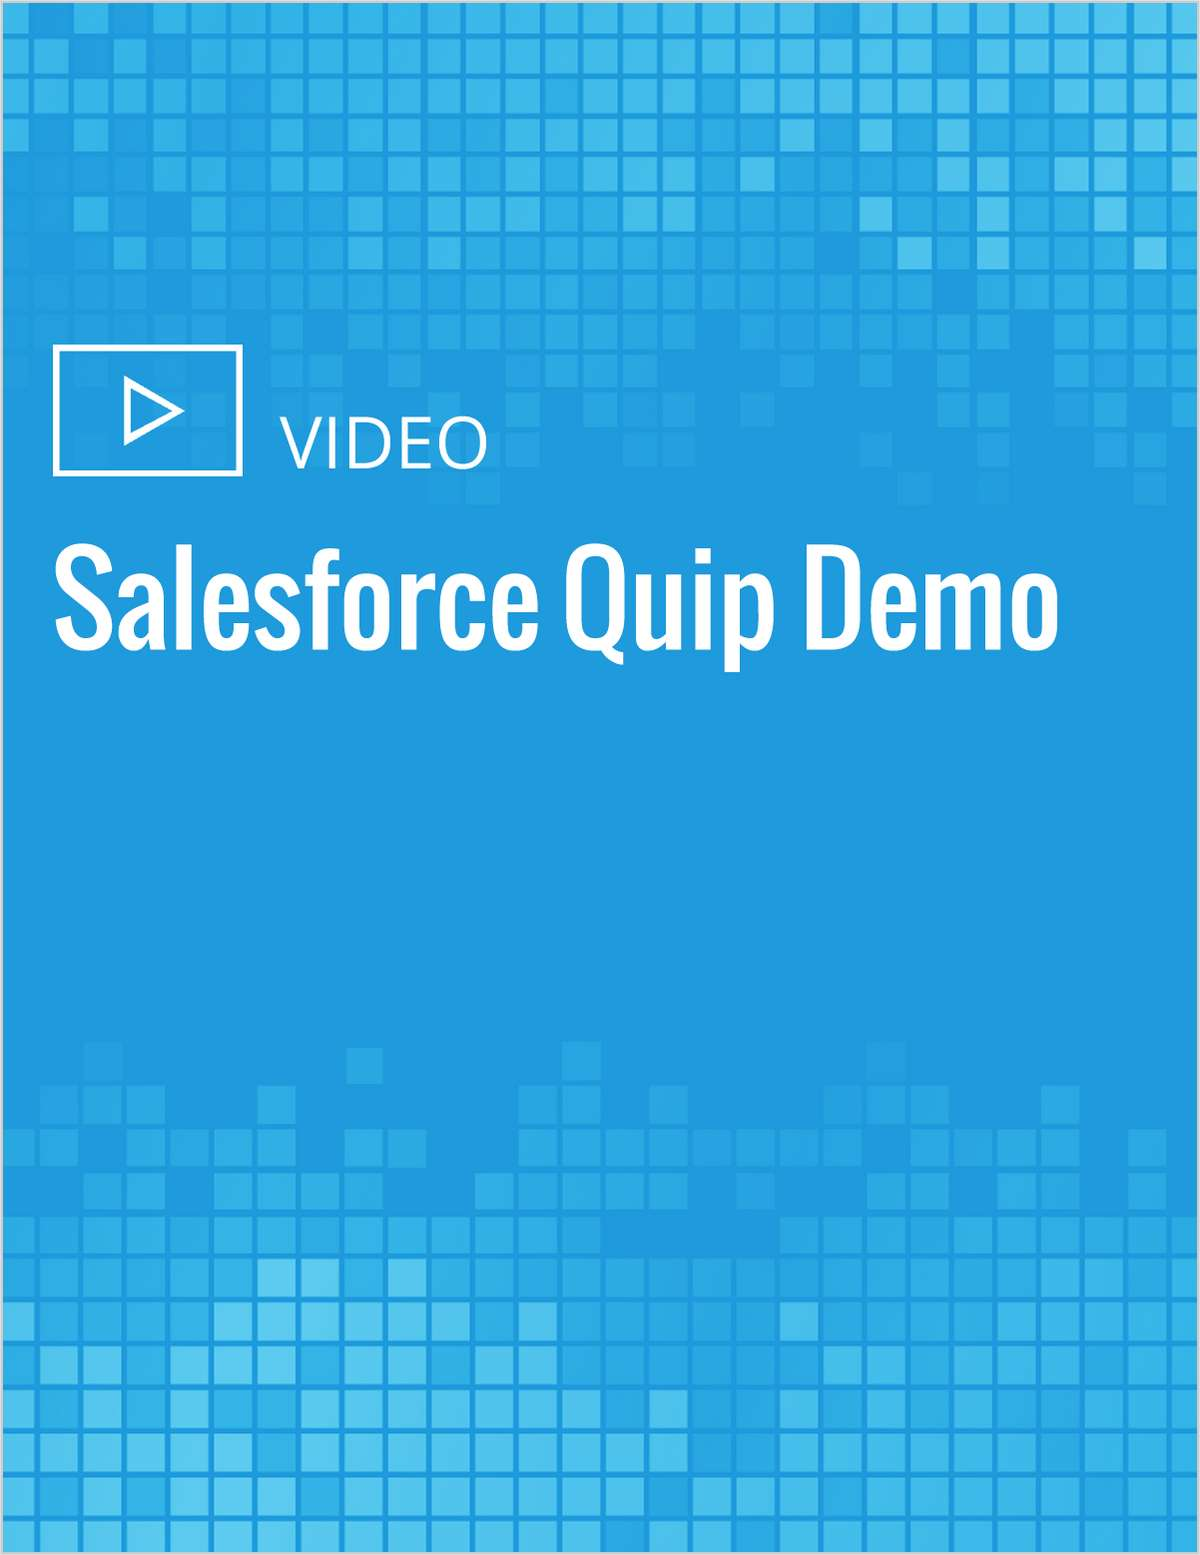 Salesforce Quip Demo